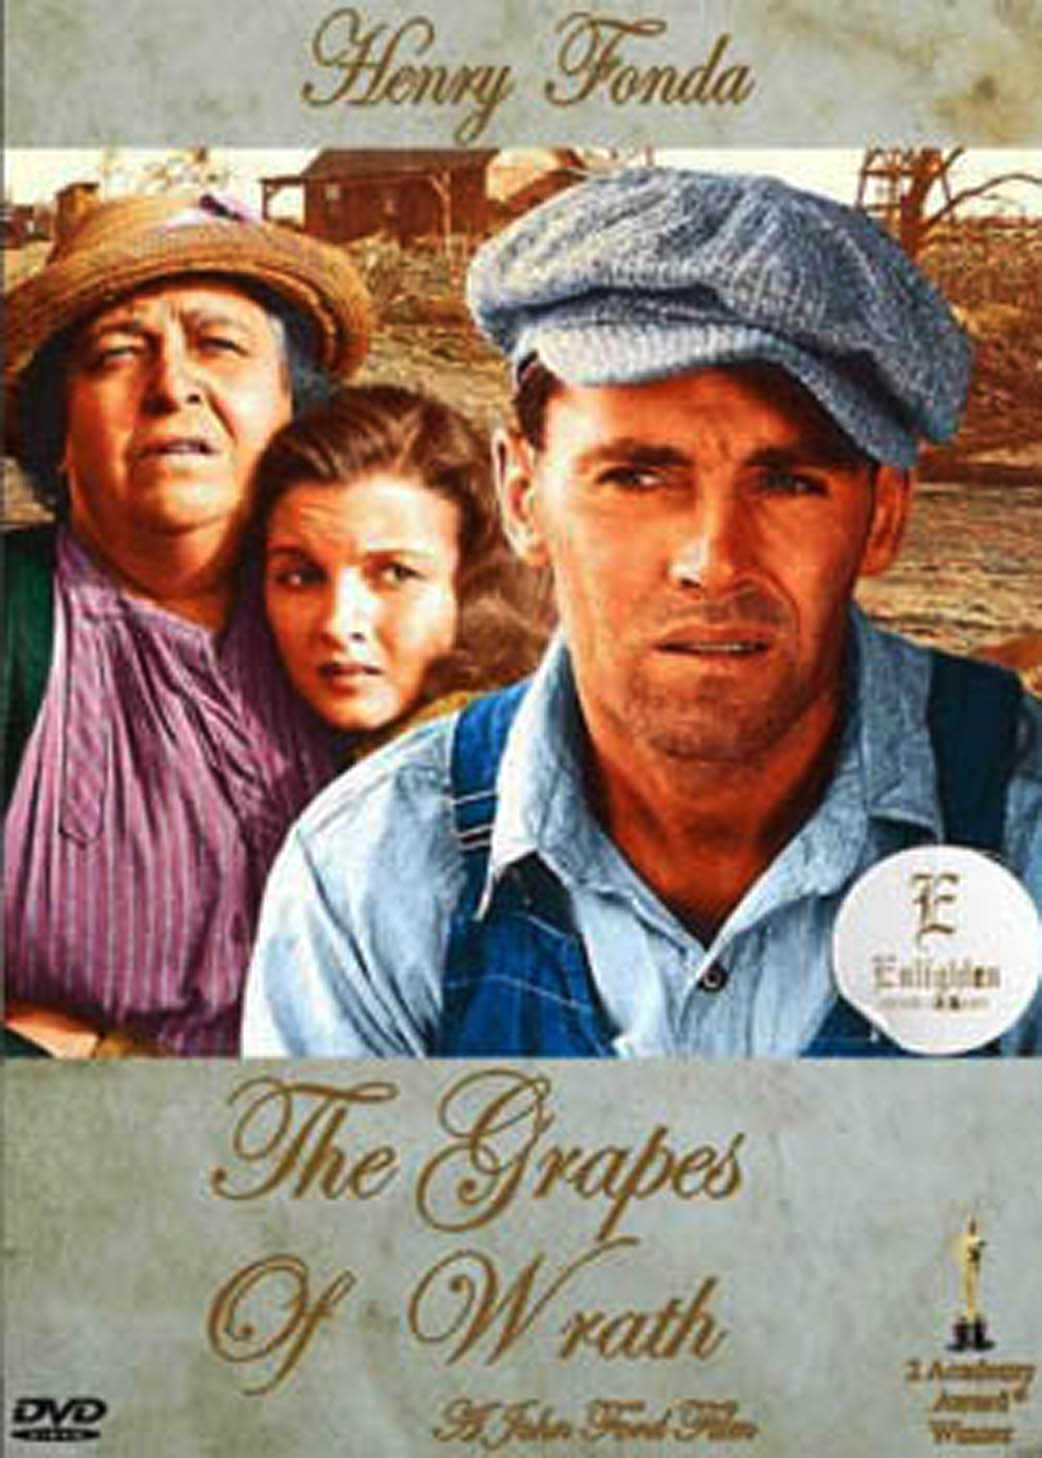 The grapes of wrath.jpg